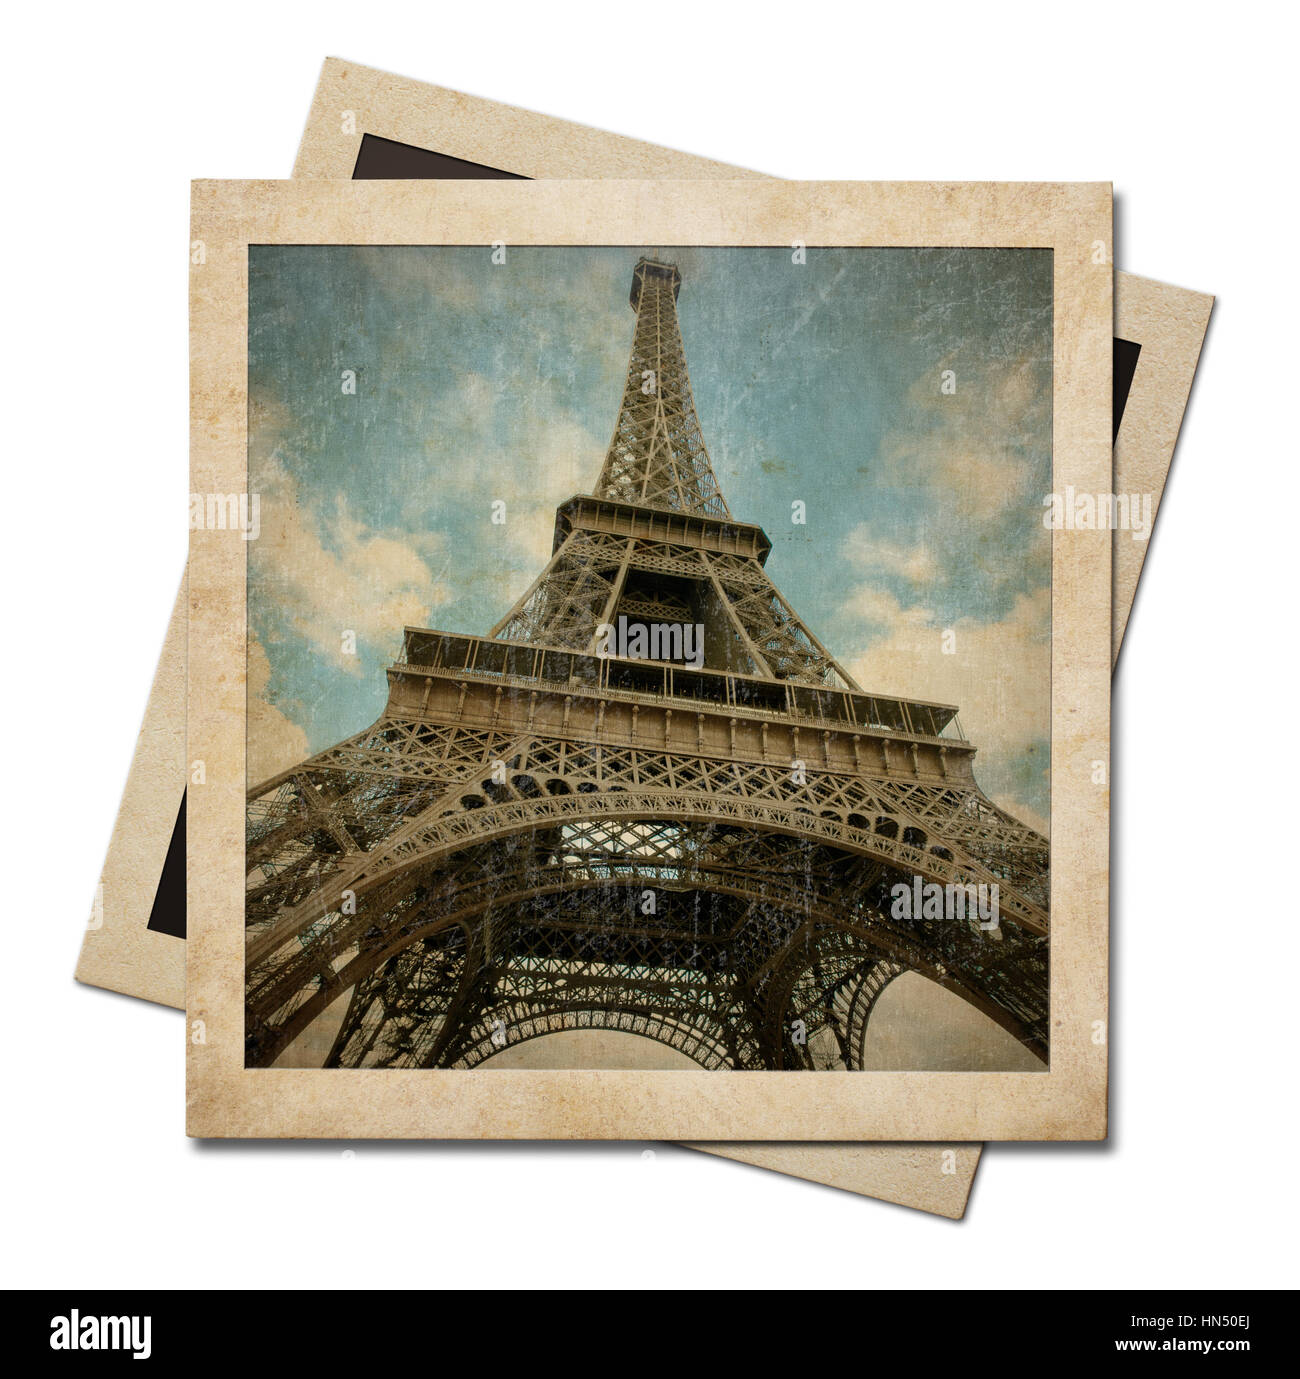 Vintage instant photo paper frames with Eiffel tower shot isolated on white - Stock Image